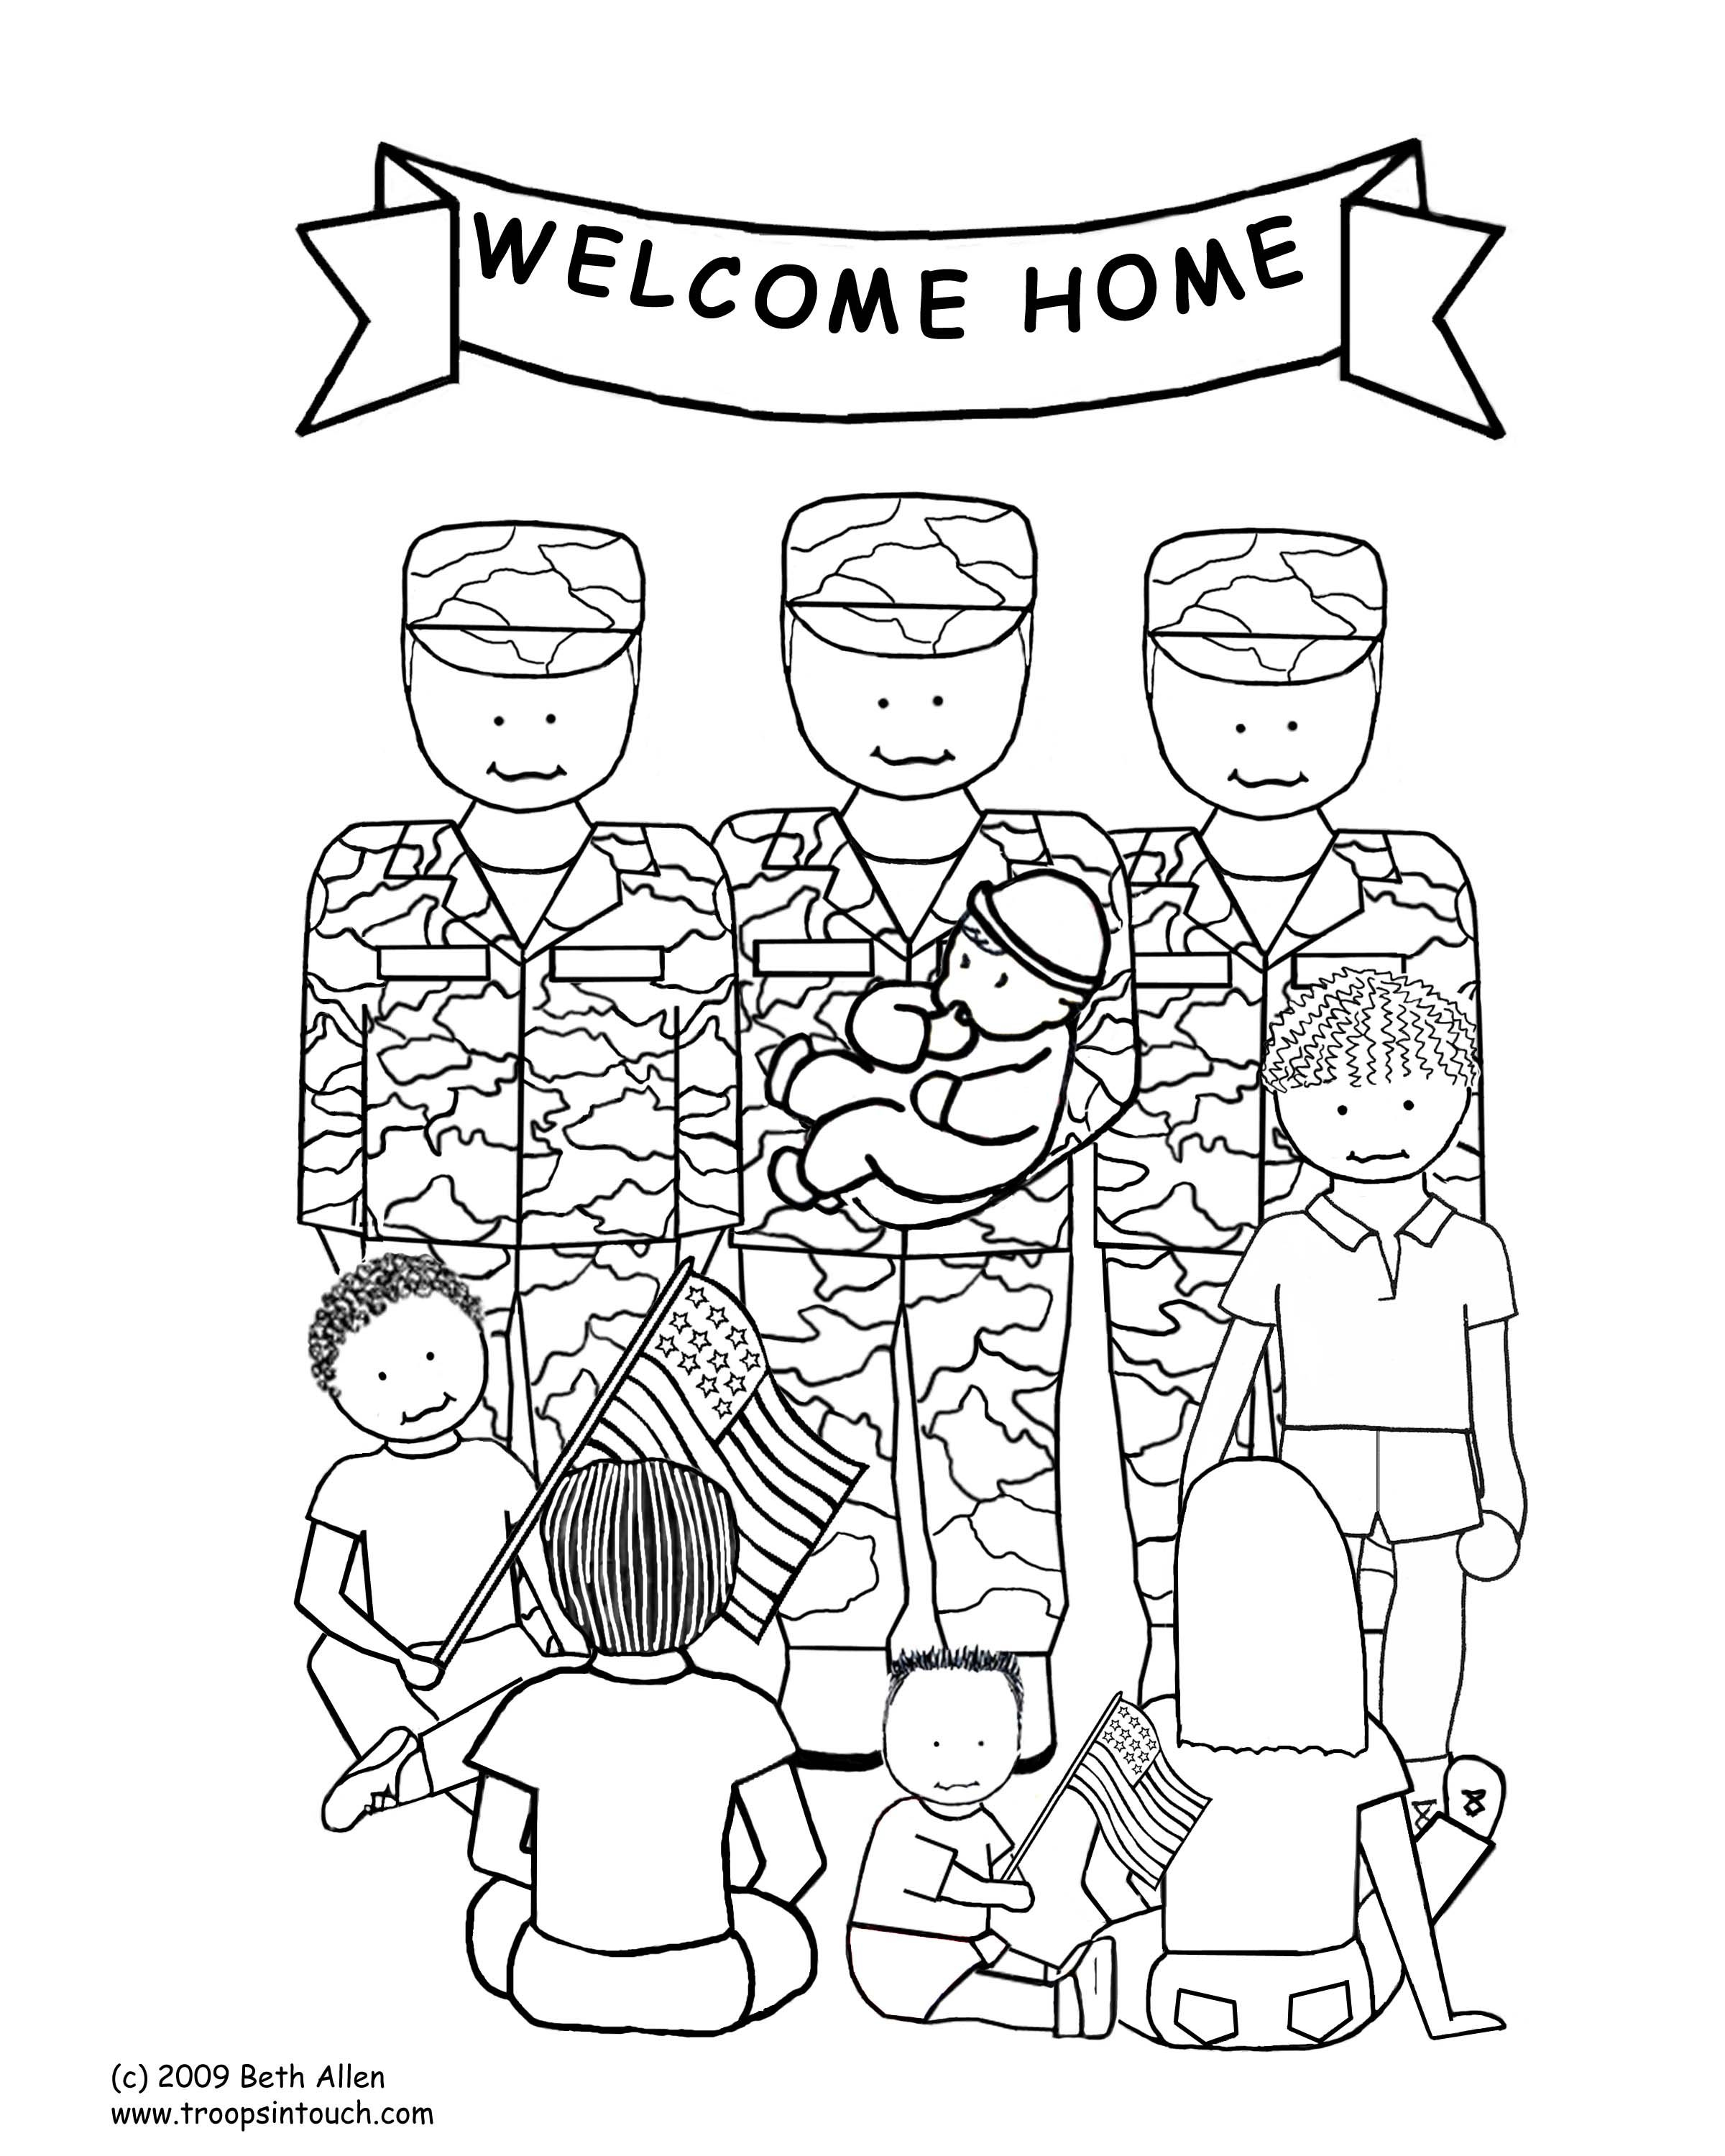 Coloring Pages and Books | Army life | Pinterest